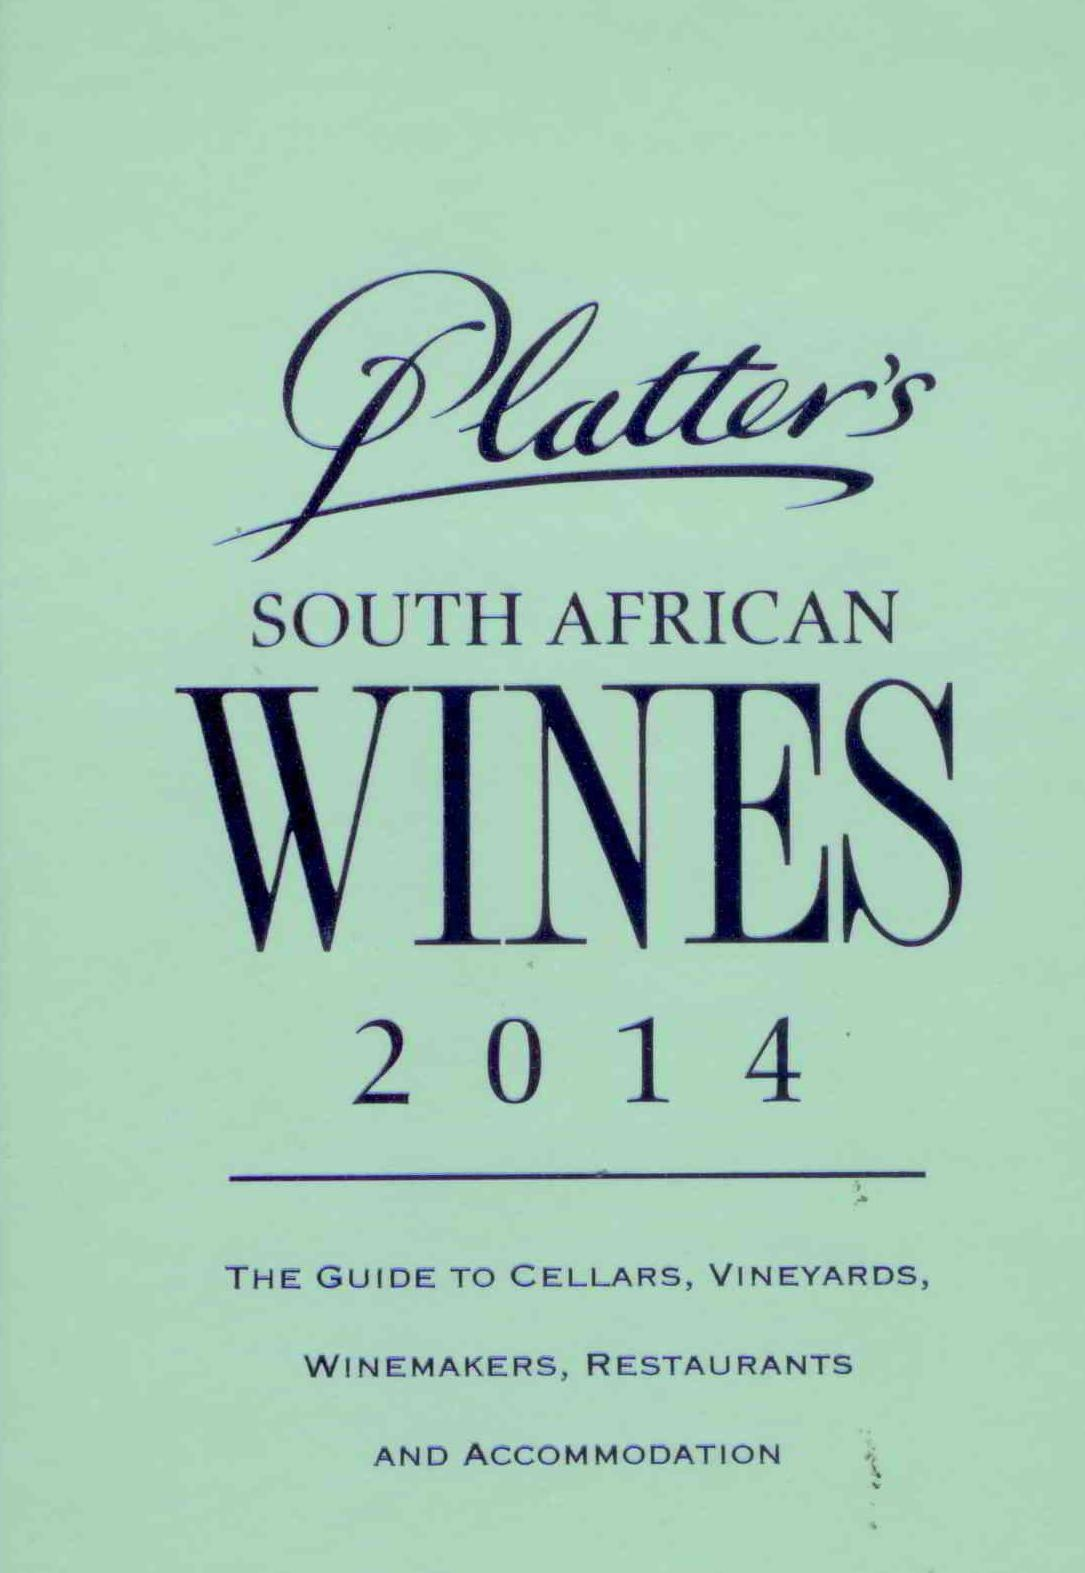 John Platter recommends Percy Tours in Hermanus for Hermanus Wine Tours, near Cape Town, South Africa